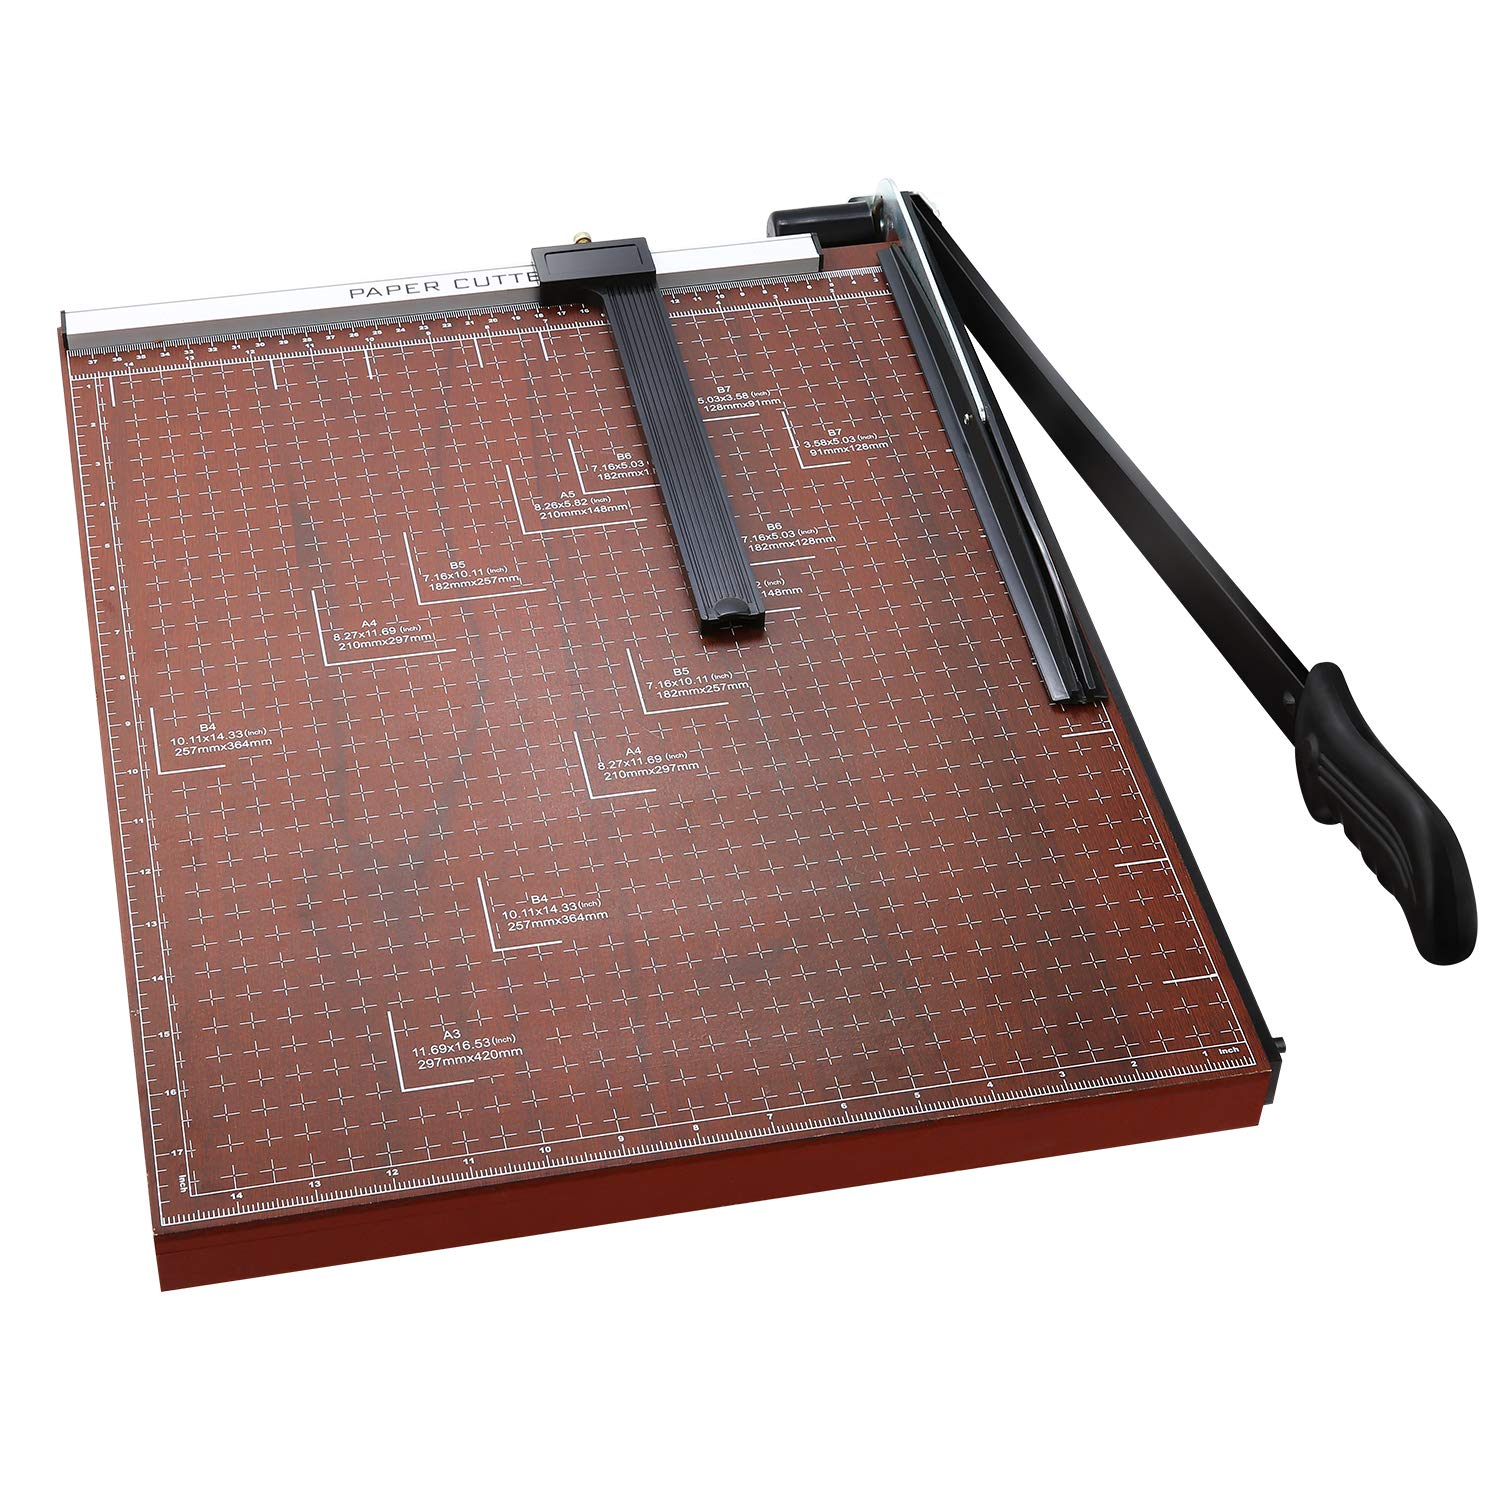 Paper Trimmer, A3 Guillotine Paper Cutter Blade Gridded Photo Guillotine Craft Machine, 18 inch Cut Length, 18.9'' x 15.0'' (Use for A2-A7) by Homdox